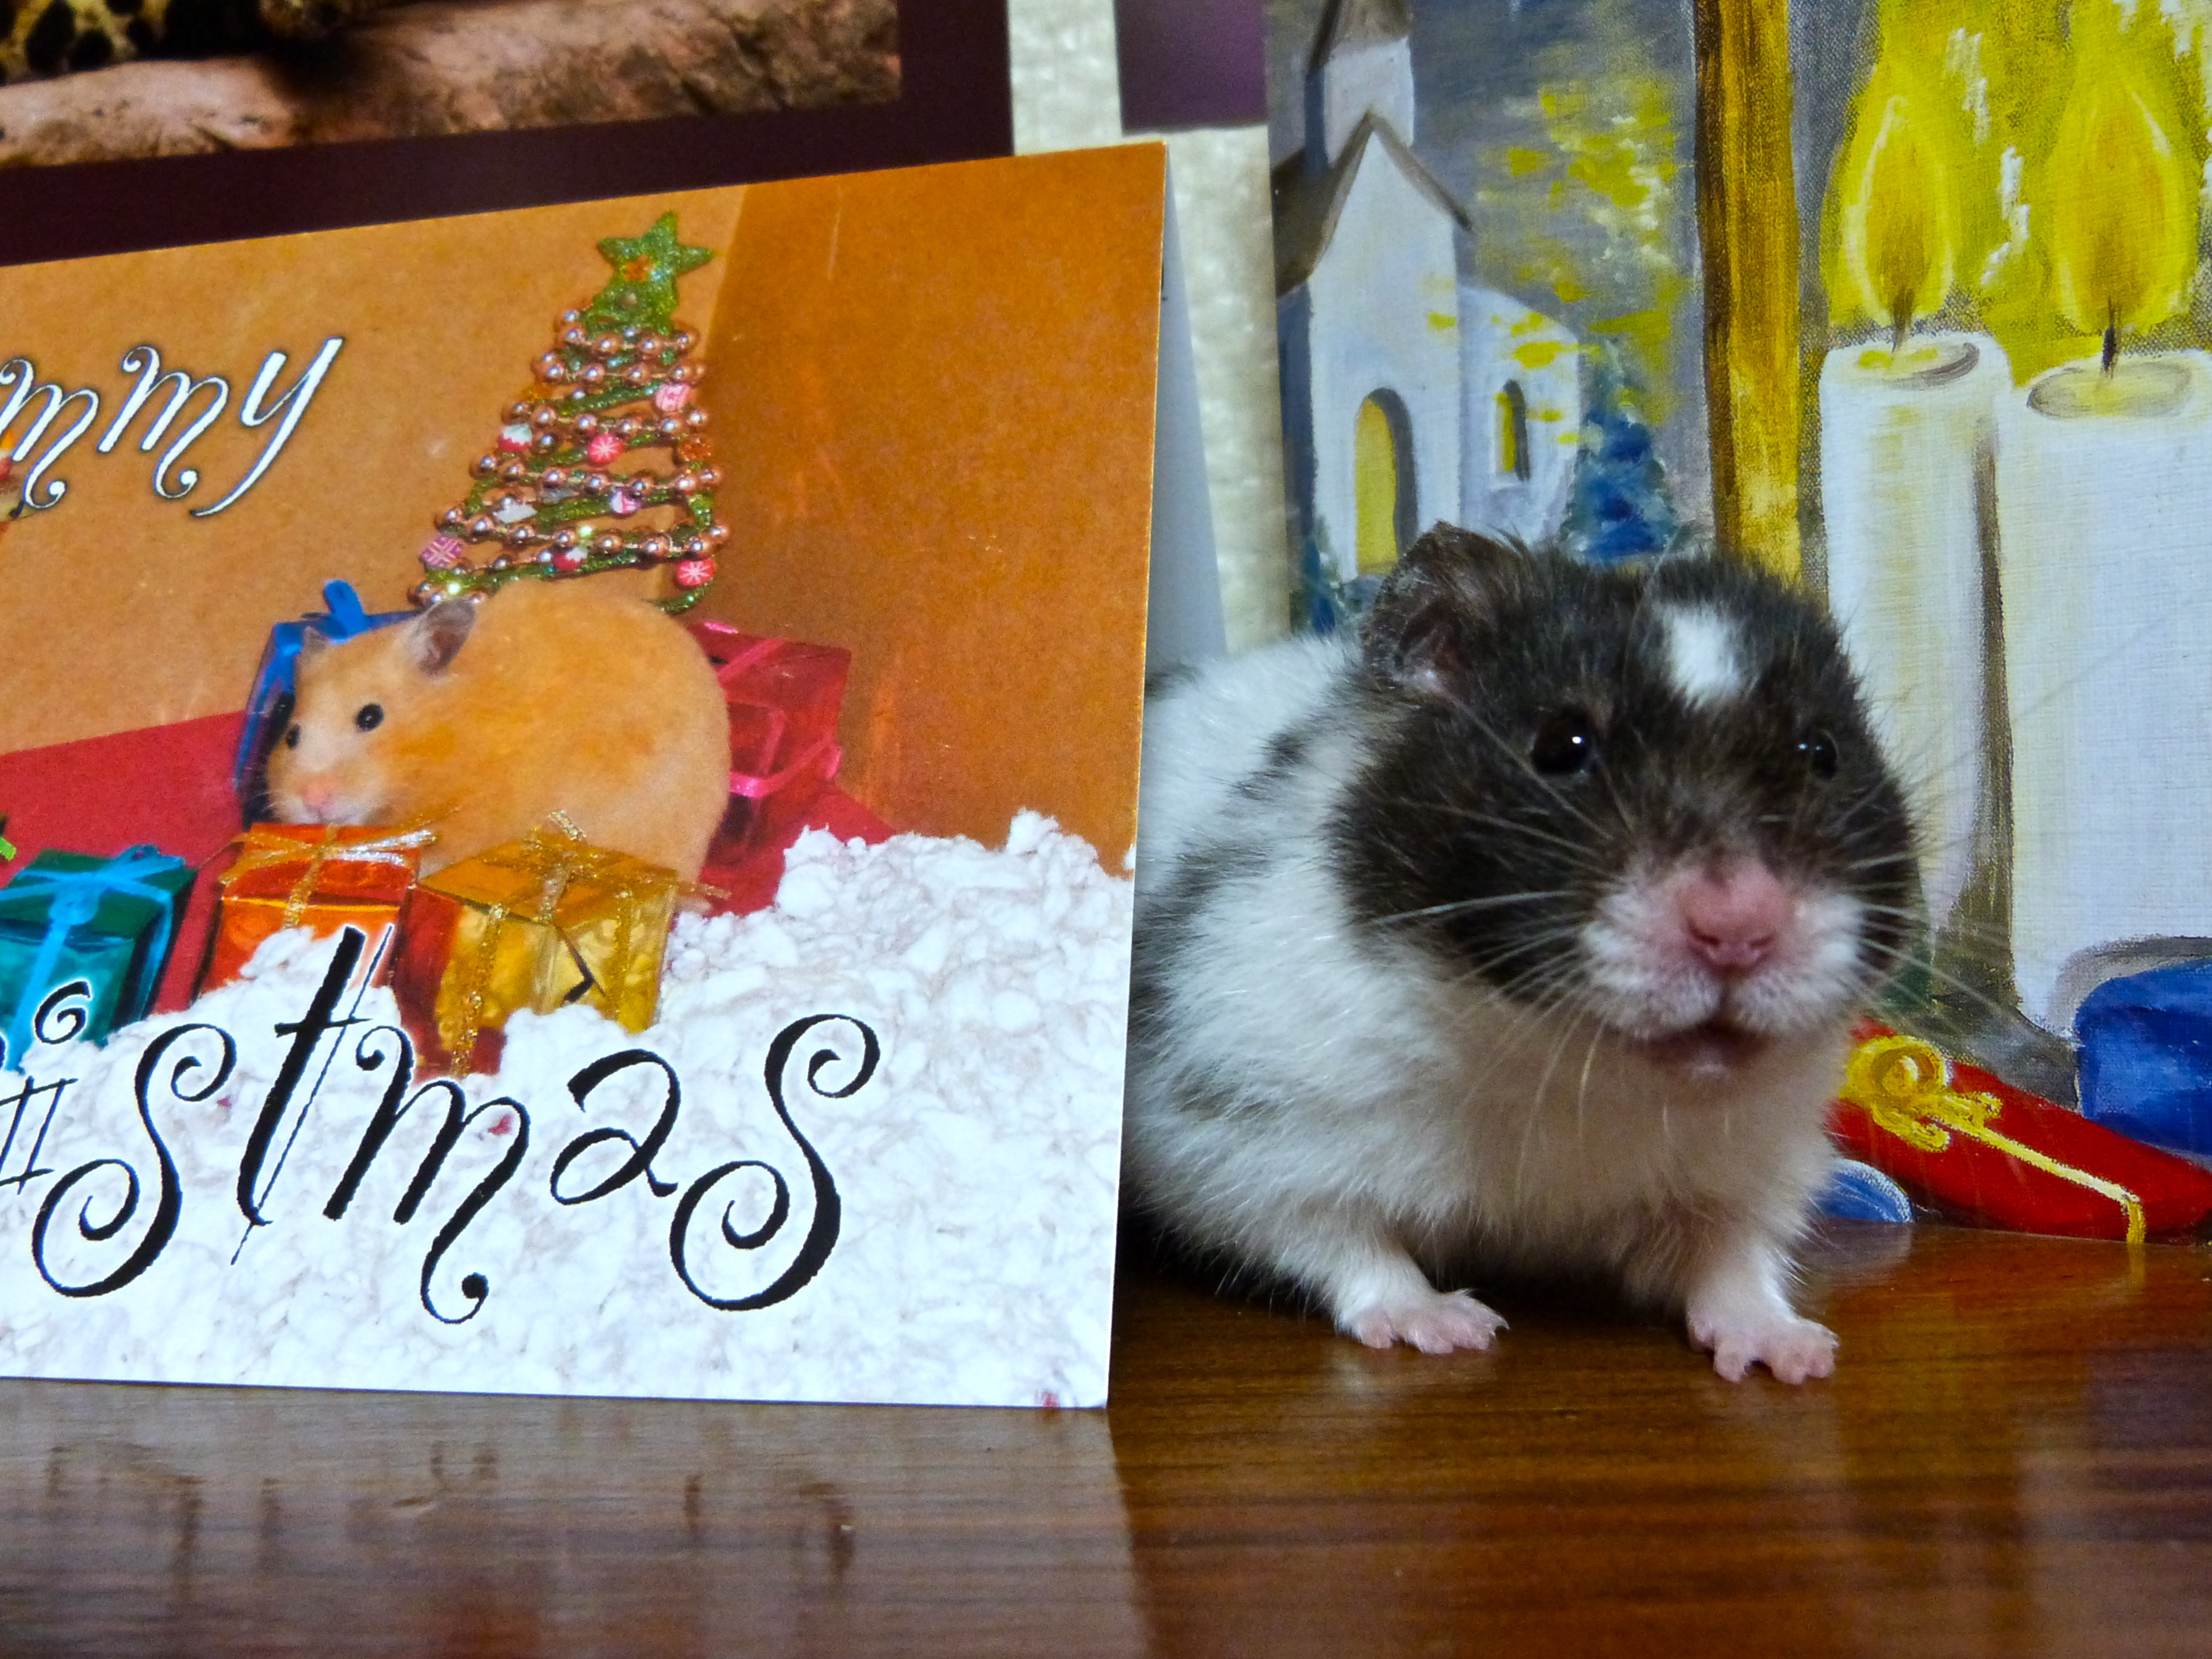 Kodi and the holiday cards, Animal, Cards, Christmas, Cute, HQ Photo